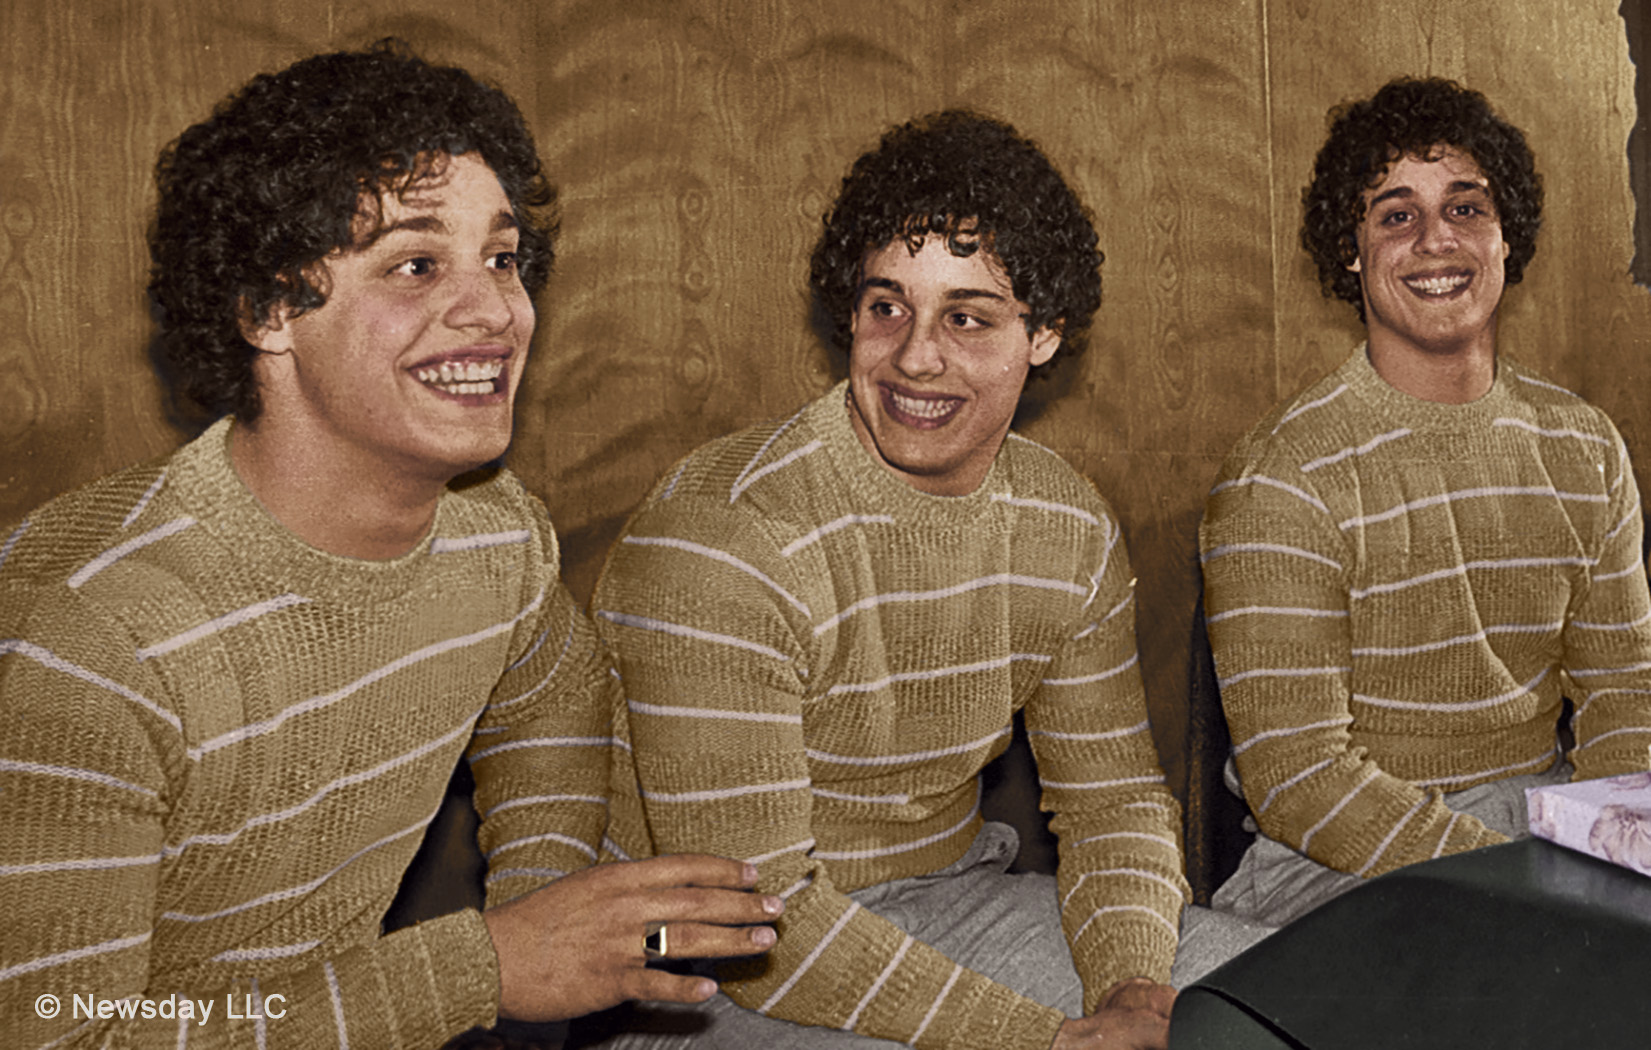 Eddy, Bobby and David from Three Identical Strangers